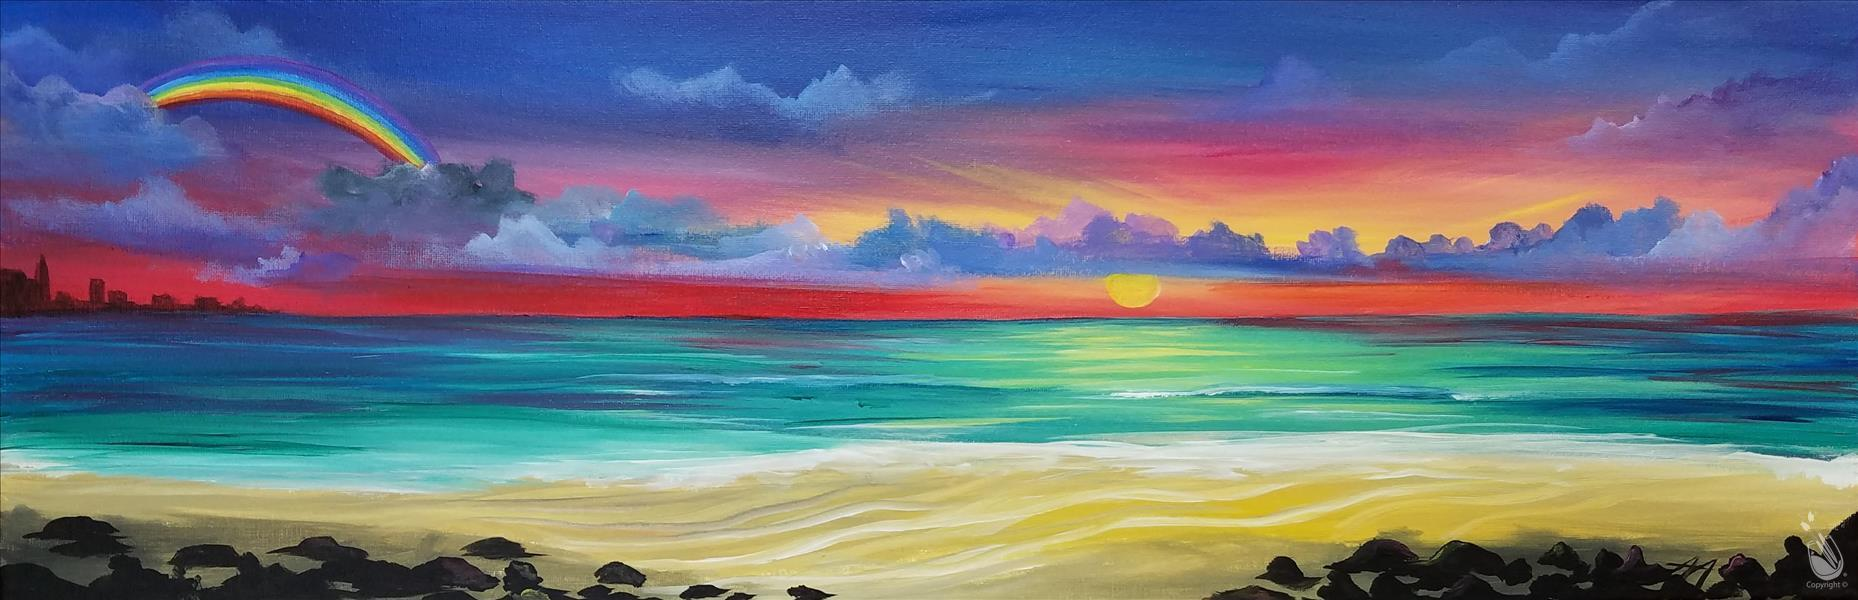 Rainbow Sunset at Honeymoon Island - In Studio